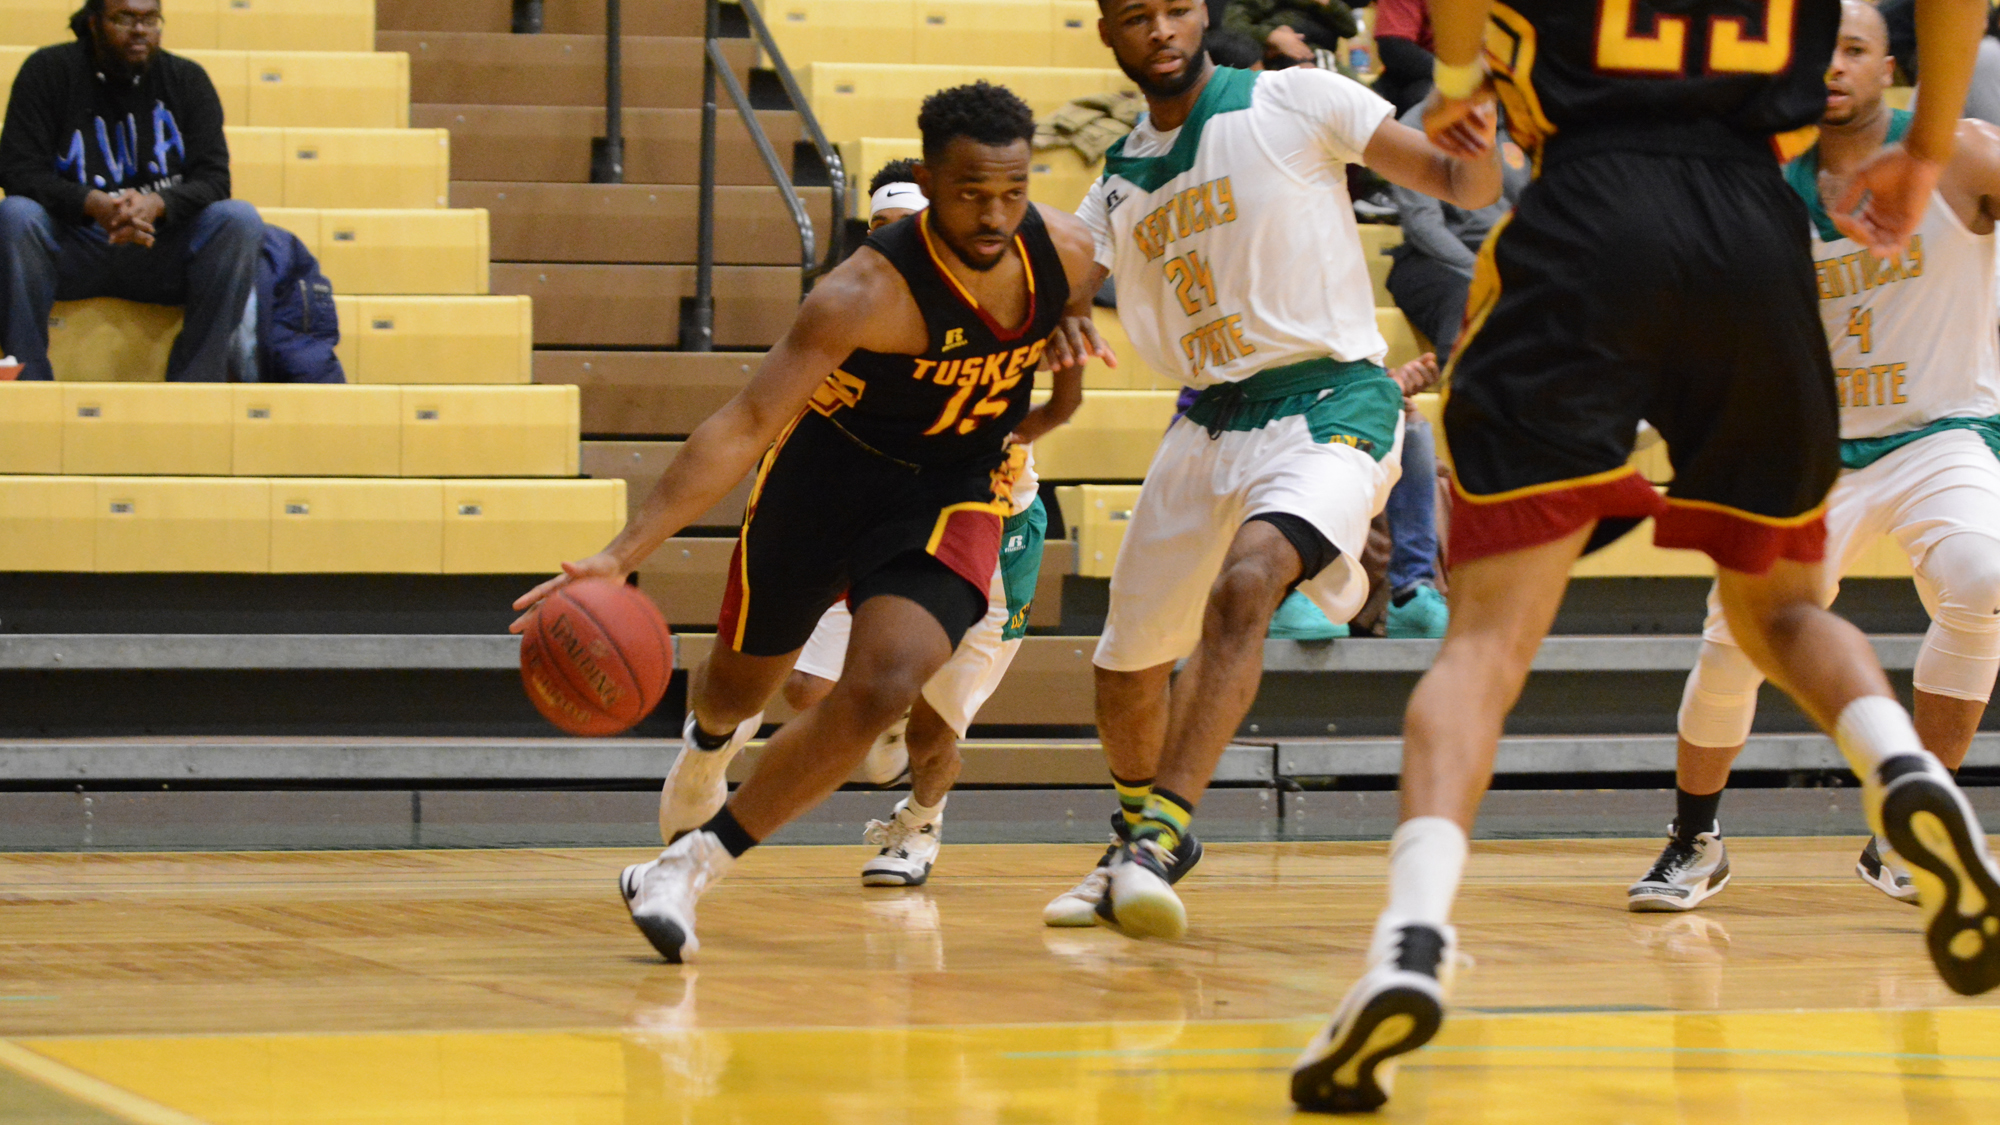 kennesaw men View the latest men's basketball team news, stats, 2018 schedule & team leaders for the kennesaw state owls.